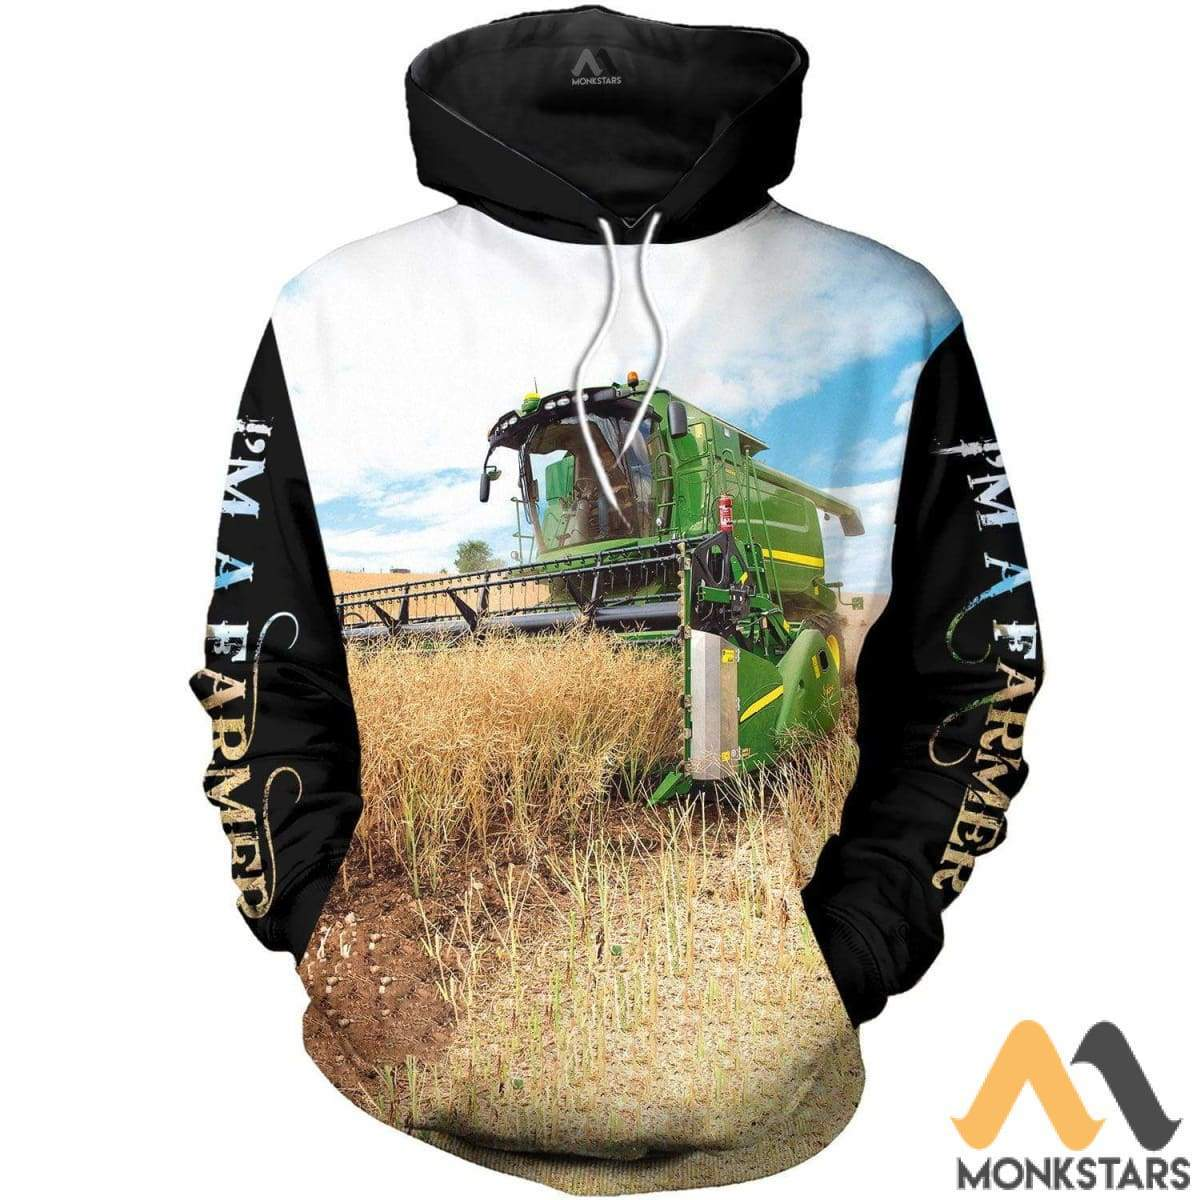 John Deere 3D All Over Printed Shirts For Men & Women Hoodie / S Clothes